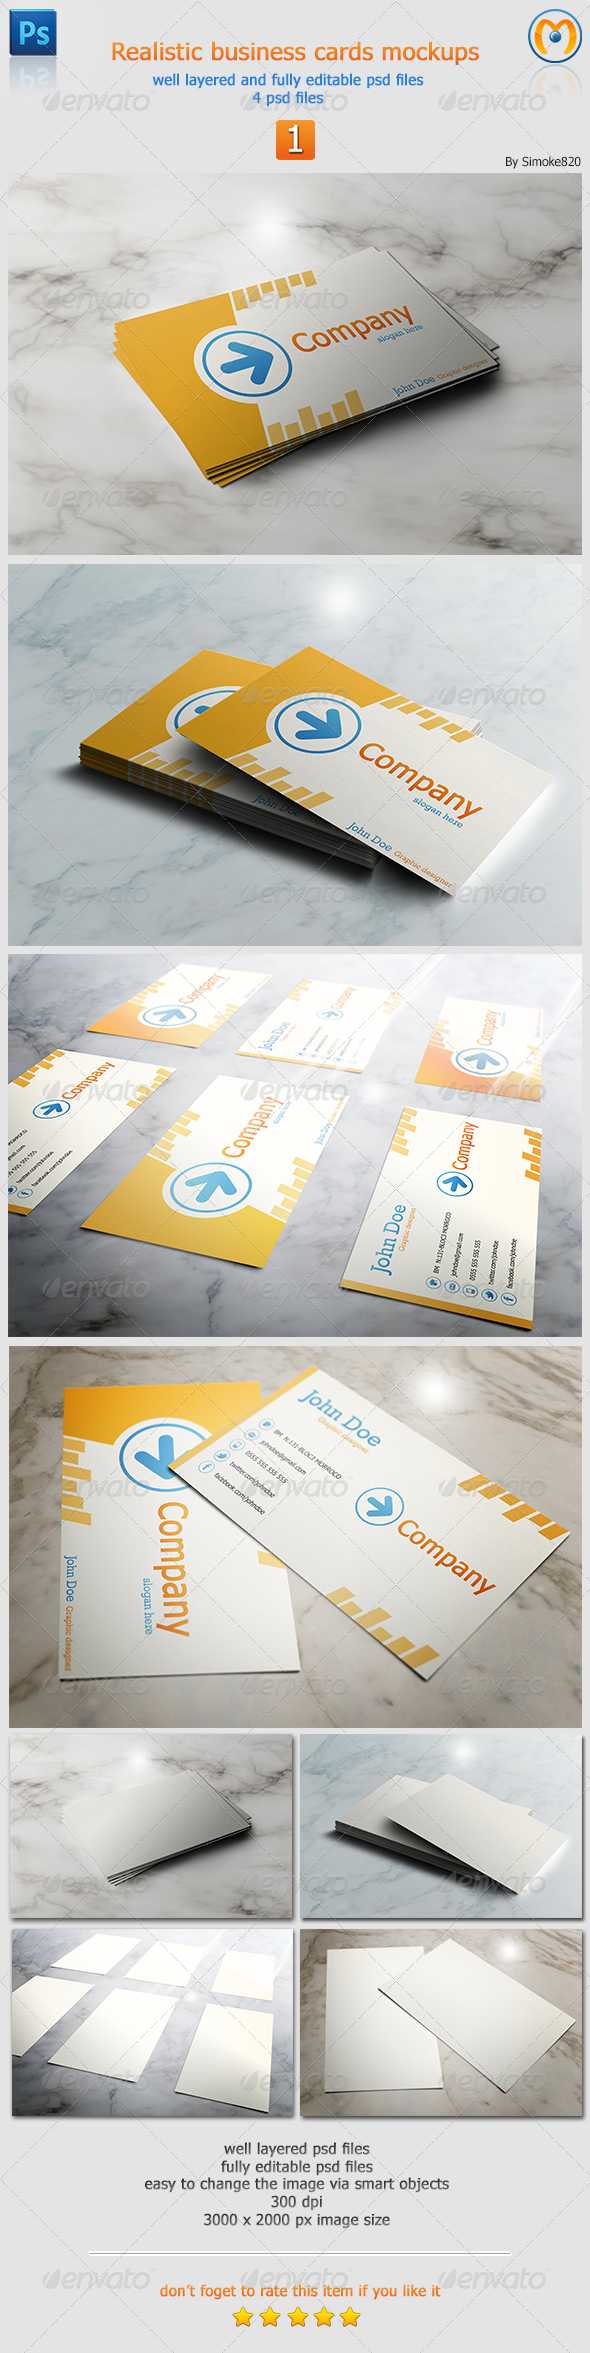 GraphicRiver Realistic Business Card Mockups V.1 5771225